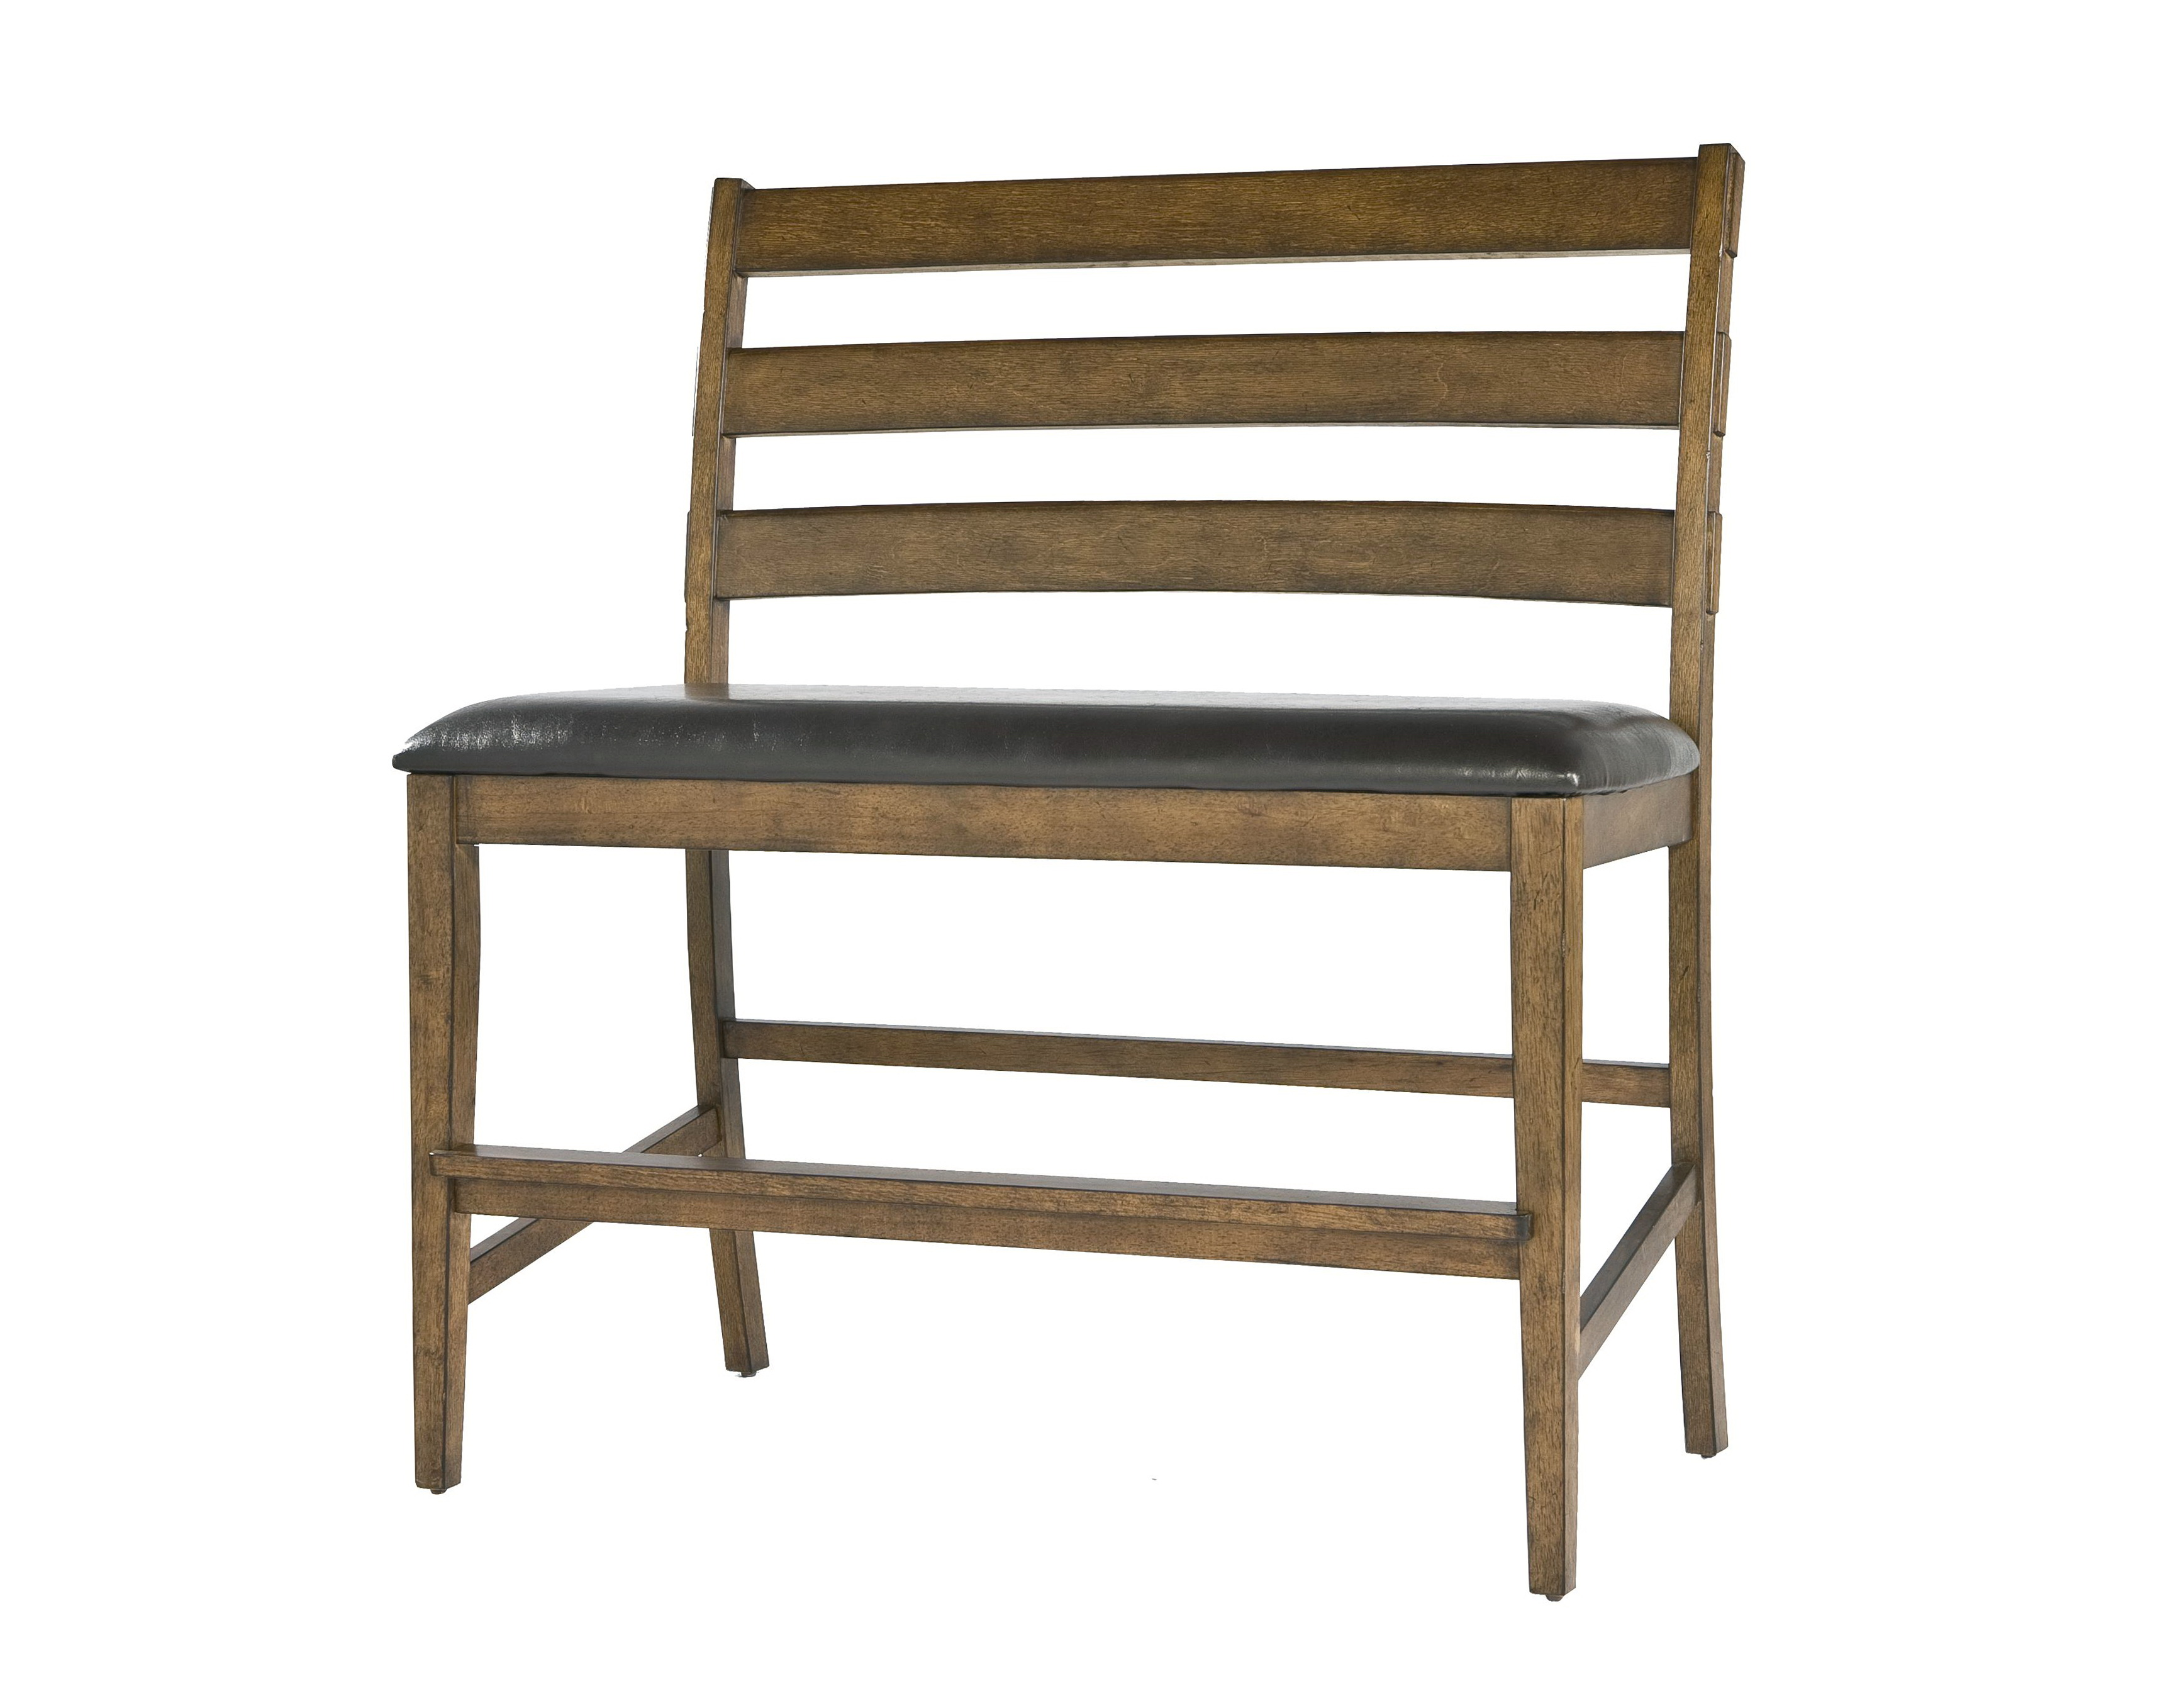 Counter Height Bench Seat With Back Home Design Ideas